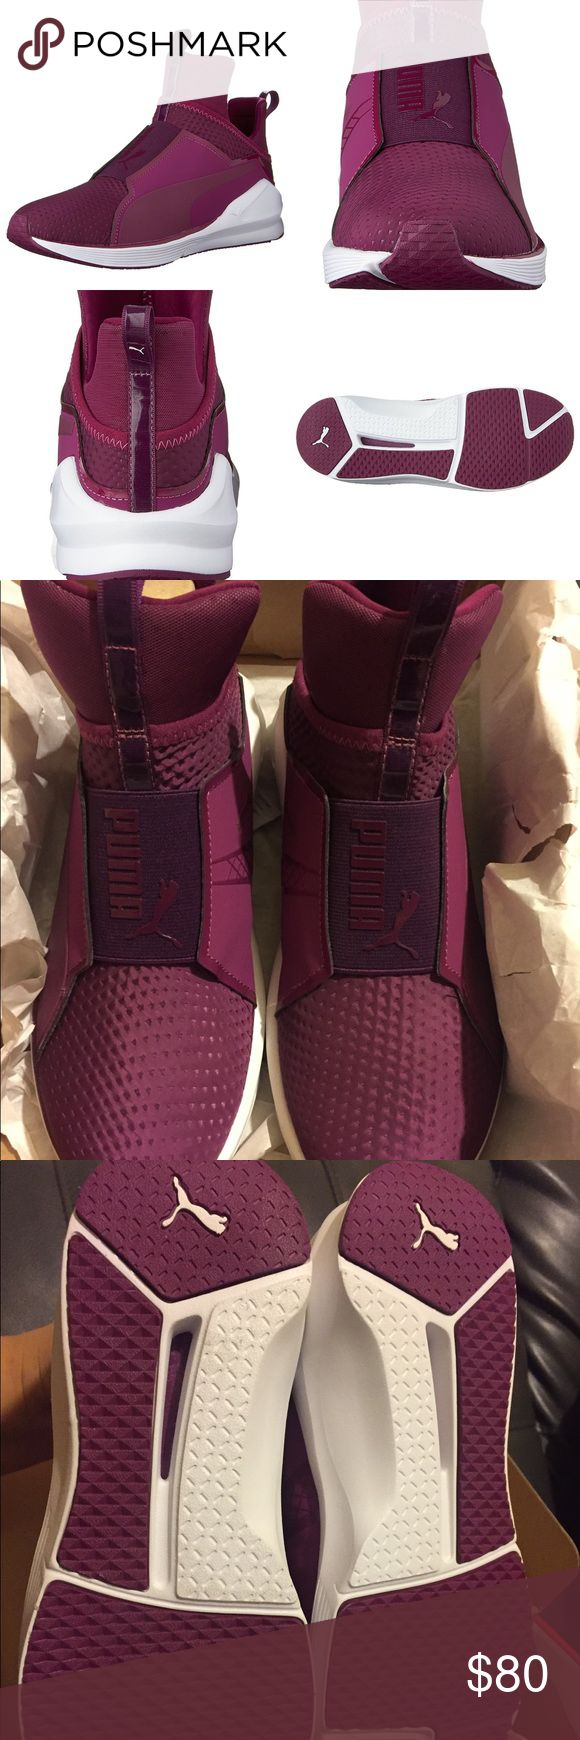 NEW PUMA FIERCE QUILTED MAGENTA PURPLE WMNS 6.5 New with box. Authentic. Color is magenta purple. Women's size 6.5. These shoes do not have shoe laces. No defects. Puma Shoes Sneakers